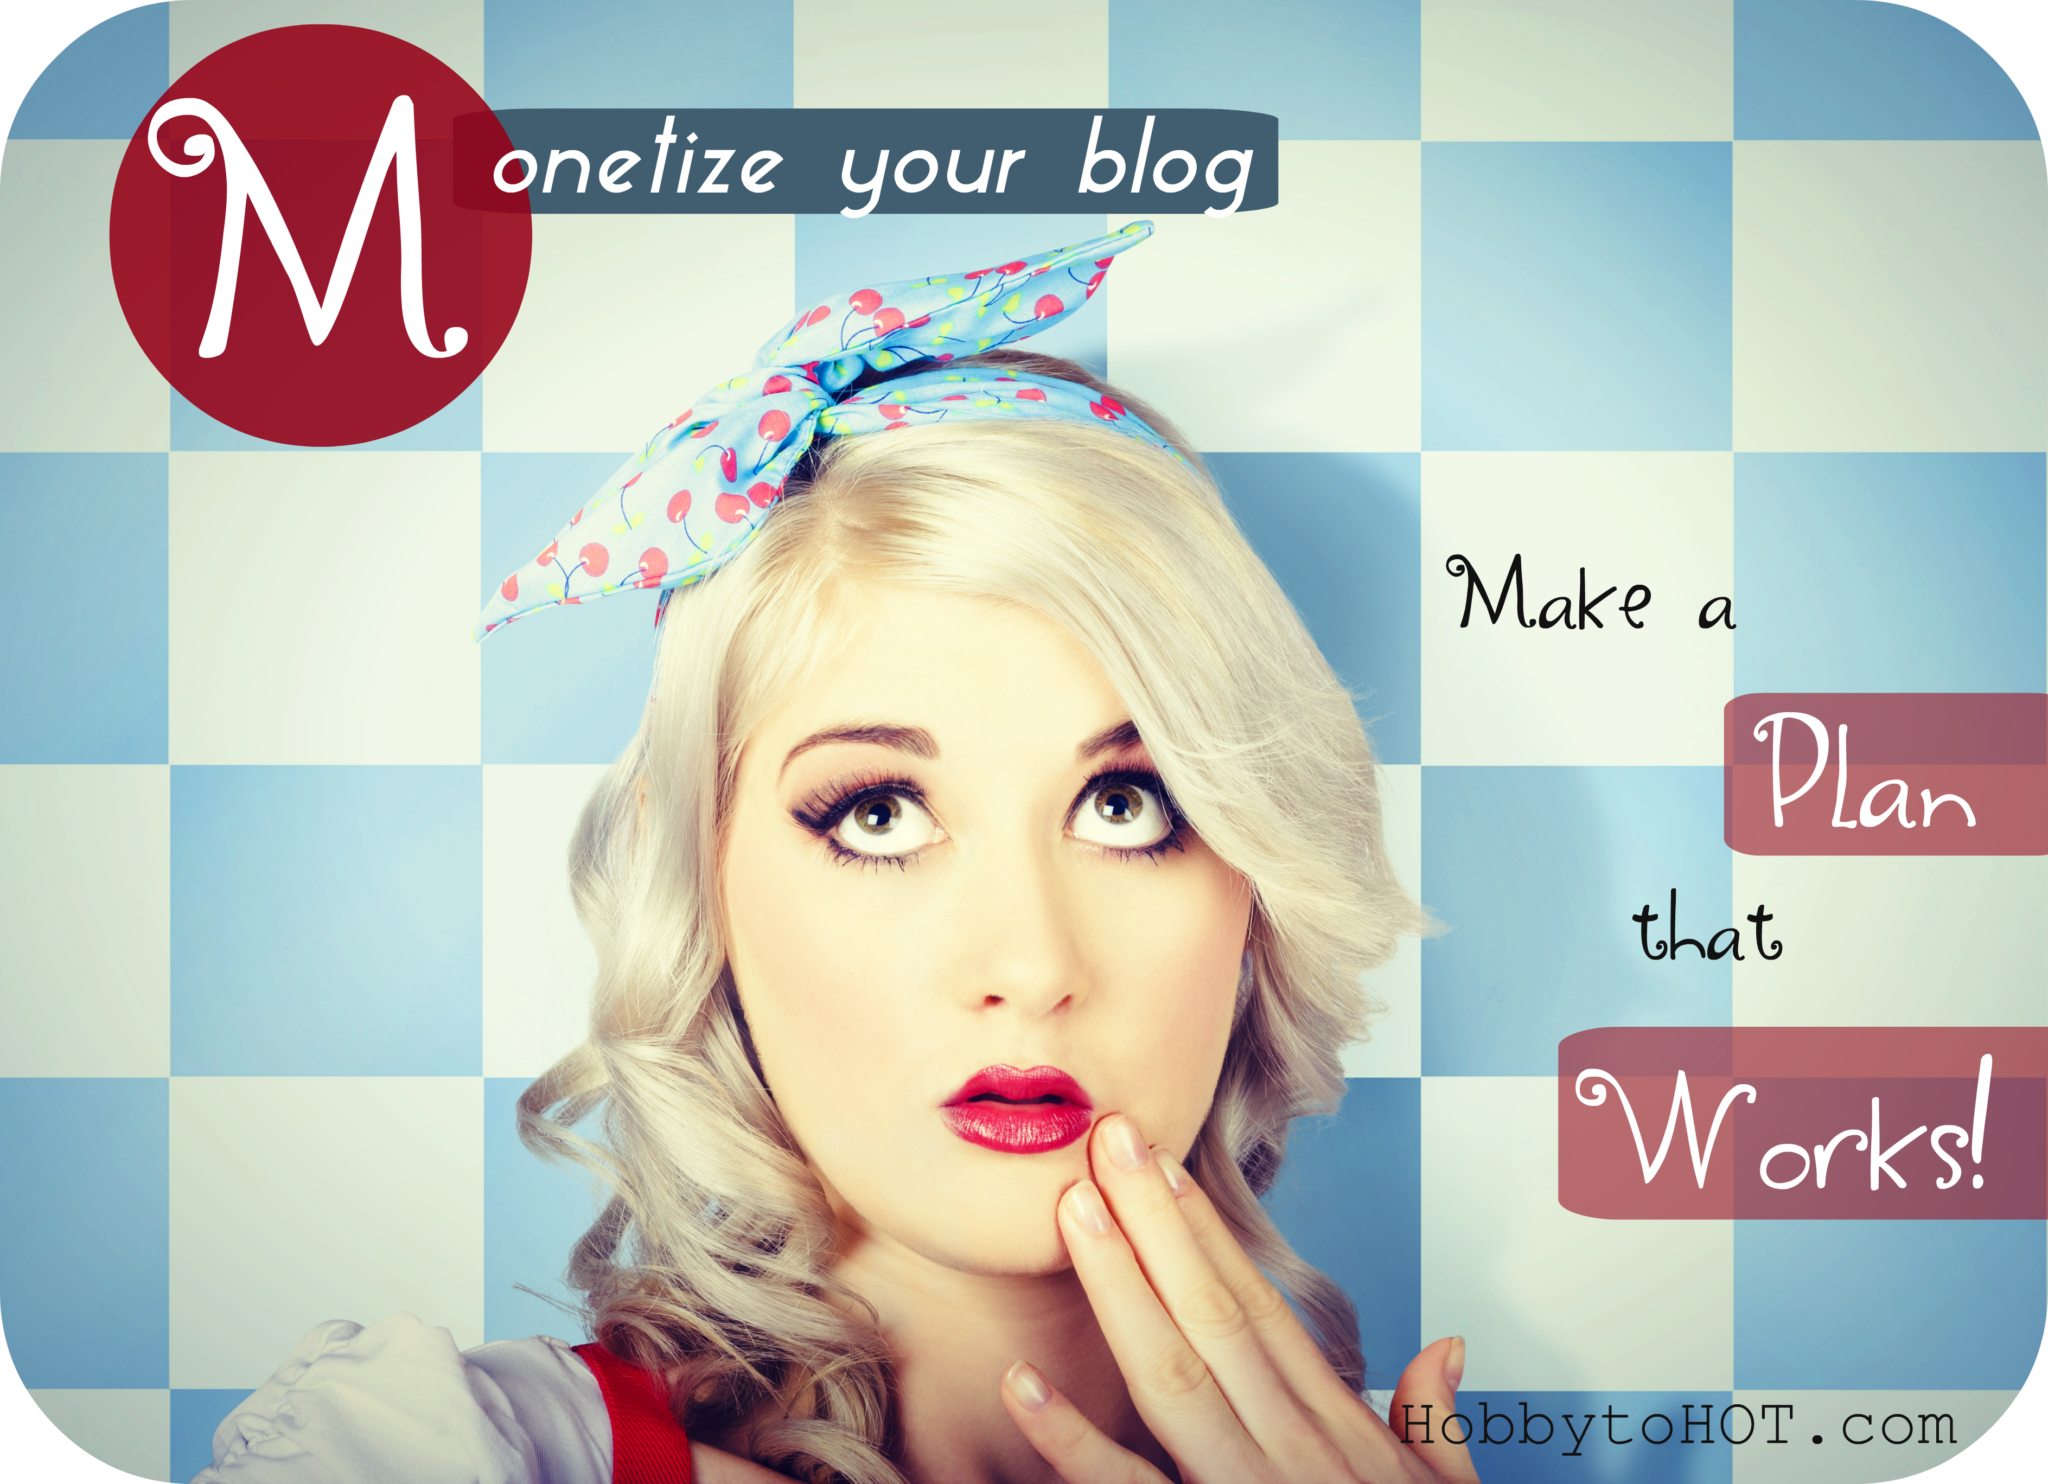 blogging, tips, make money blogging